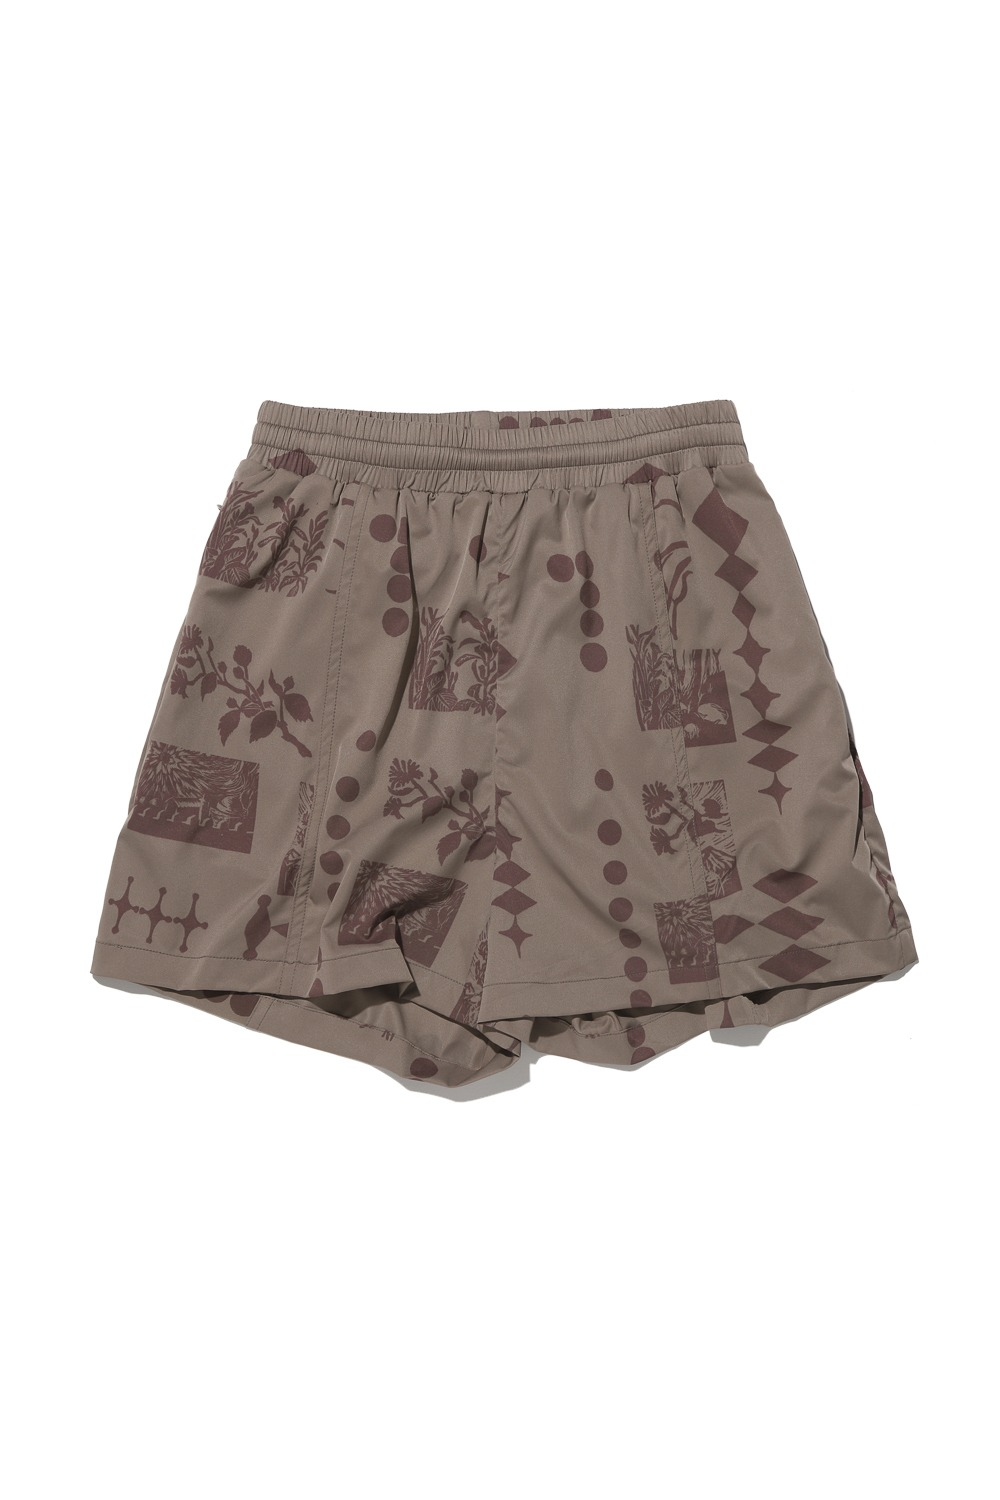 2021 CALL OUT_NAMSAN EDITION WINDRUNNER SHORTS_COCOA